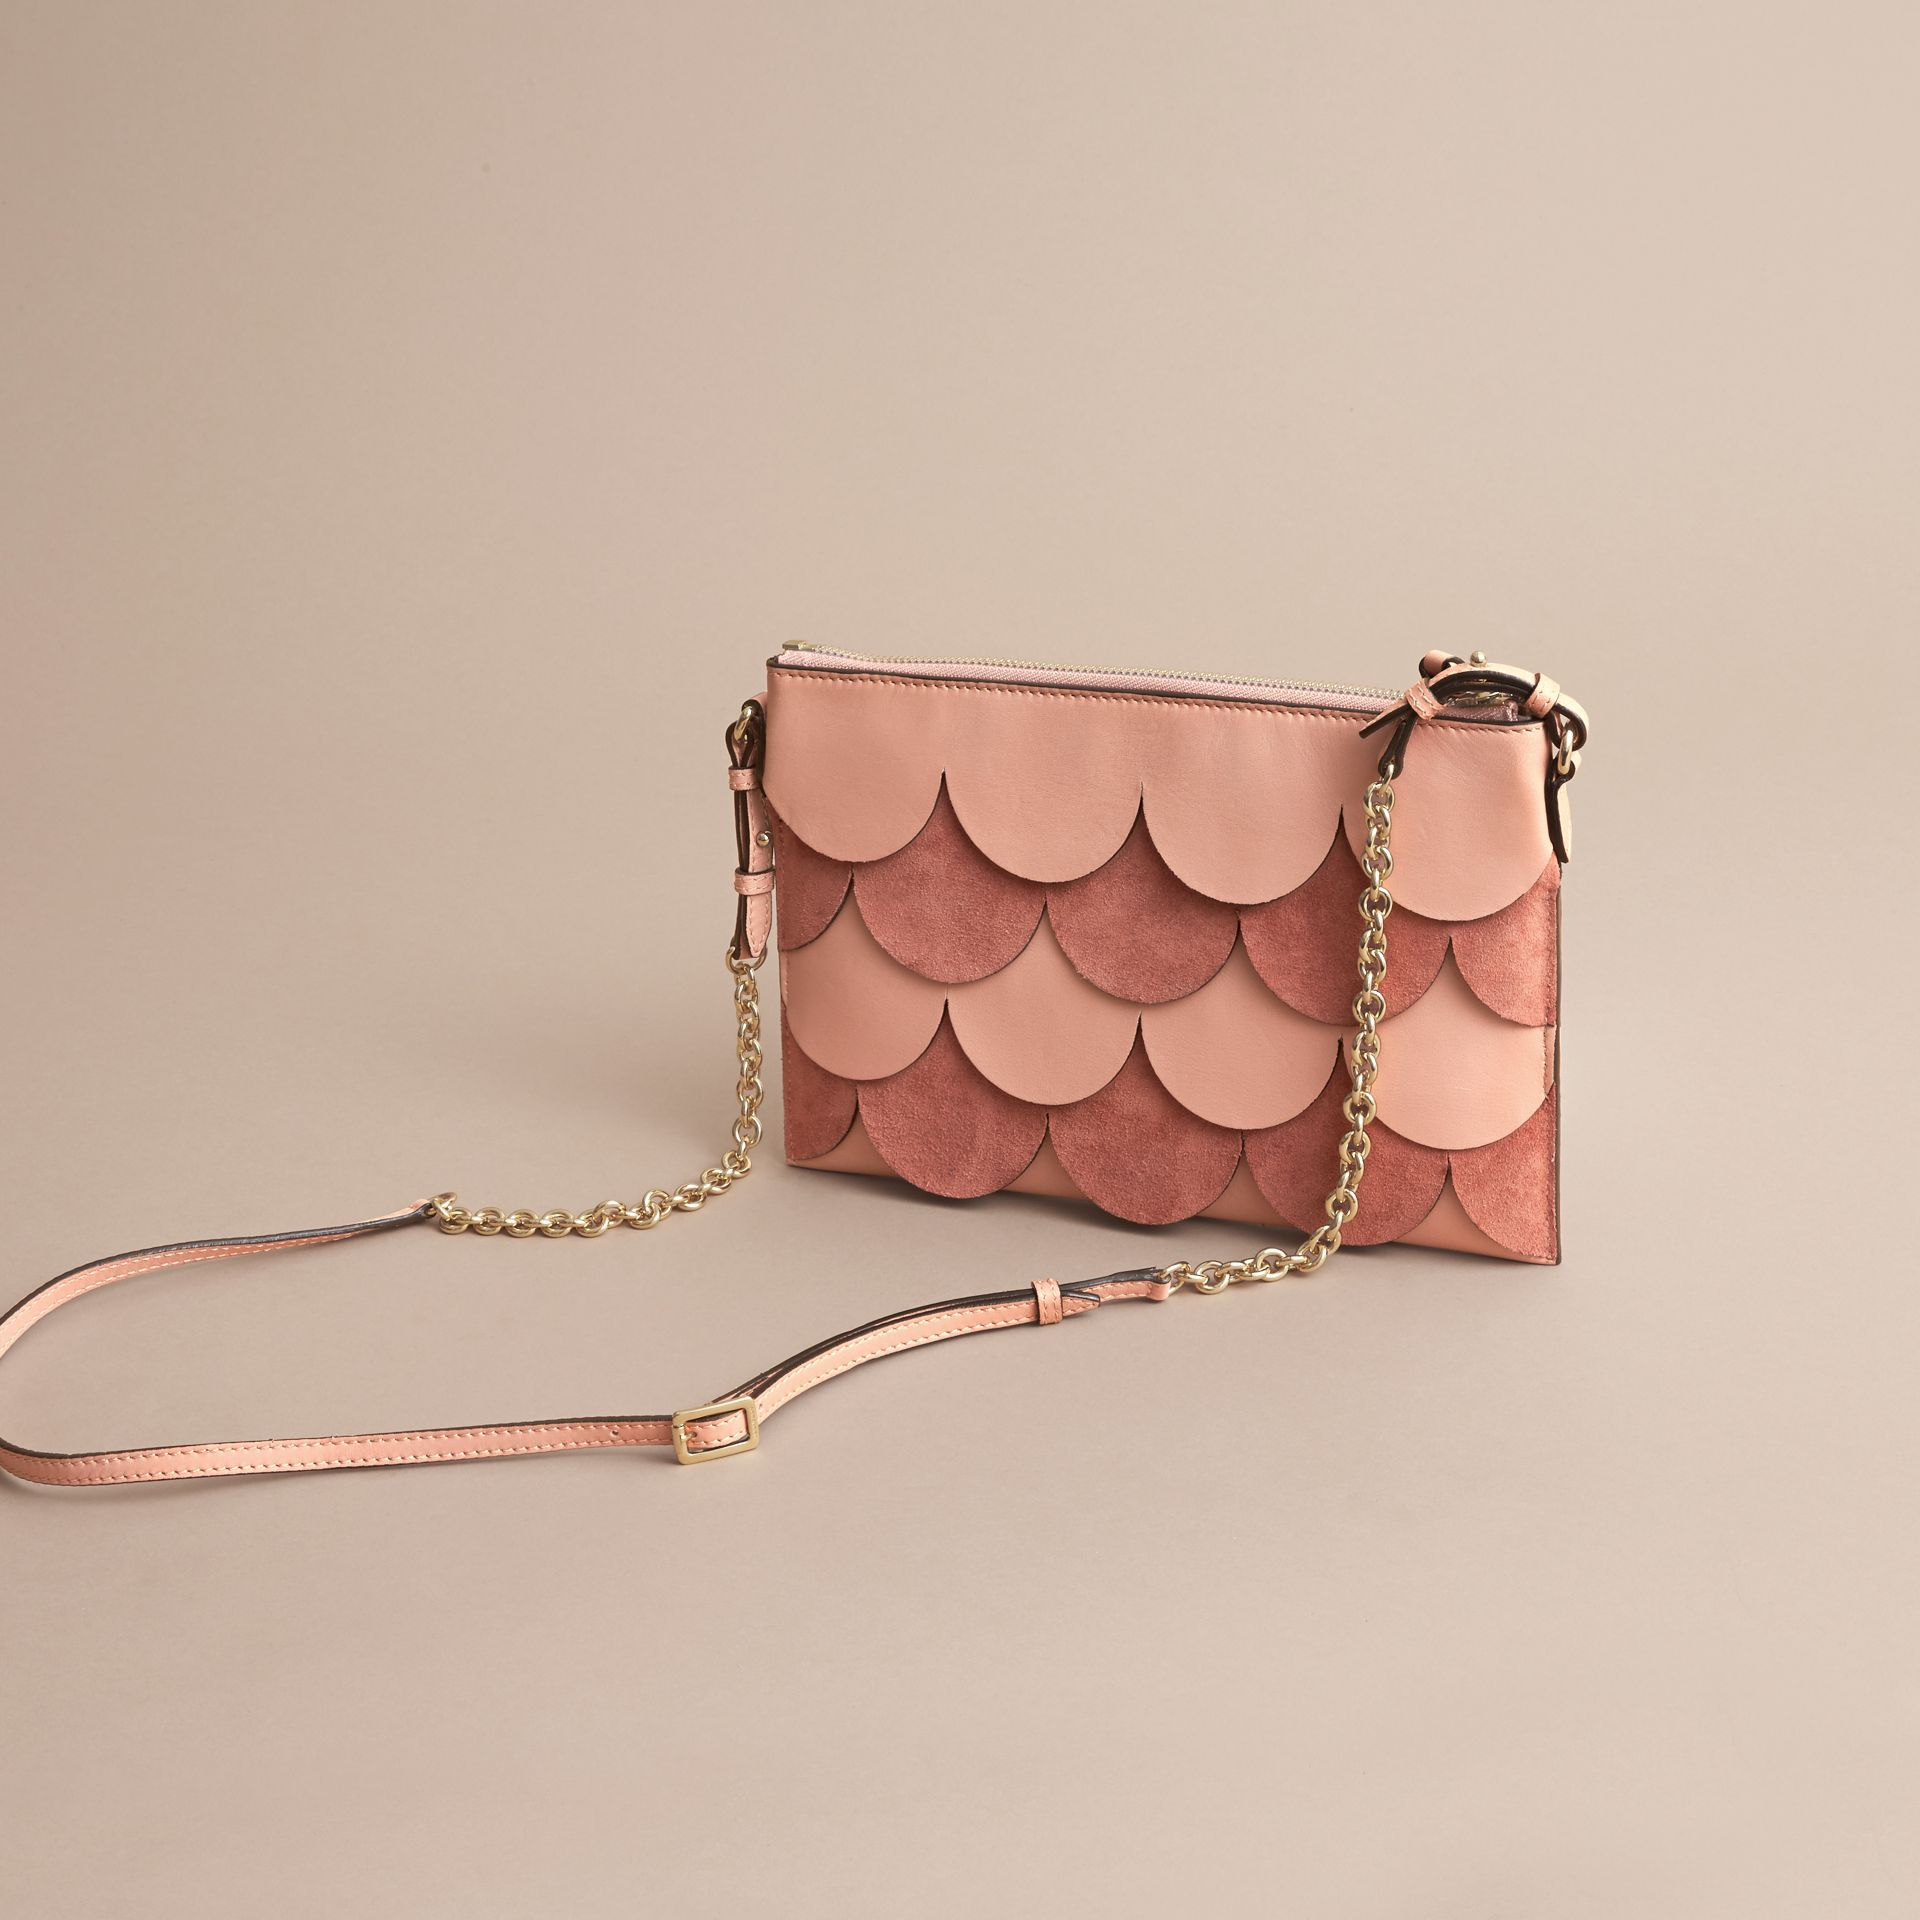 Two-tone Scalloped Leather and Suede Clutch Bag in Ash Rose - Women | Burberry Singapore - gallery image 5